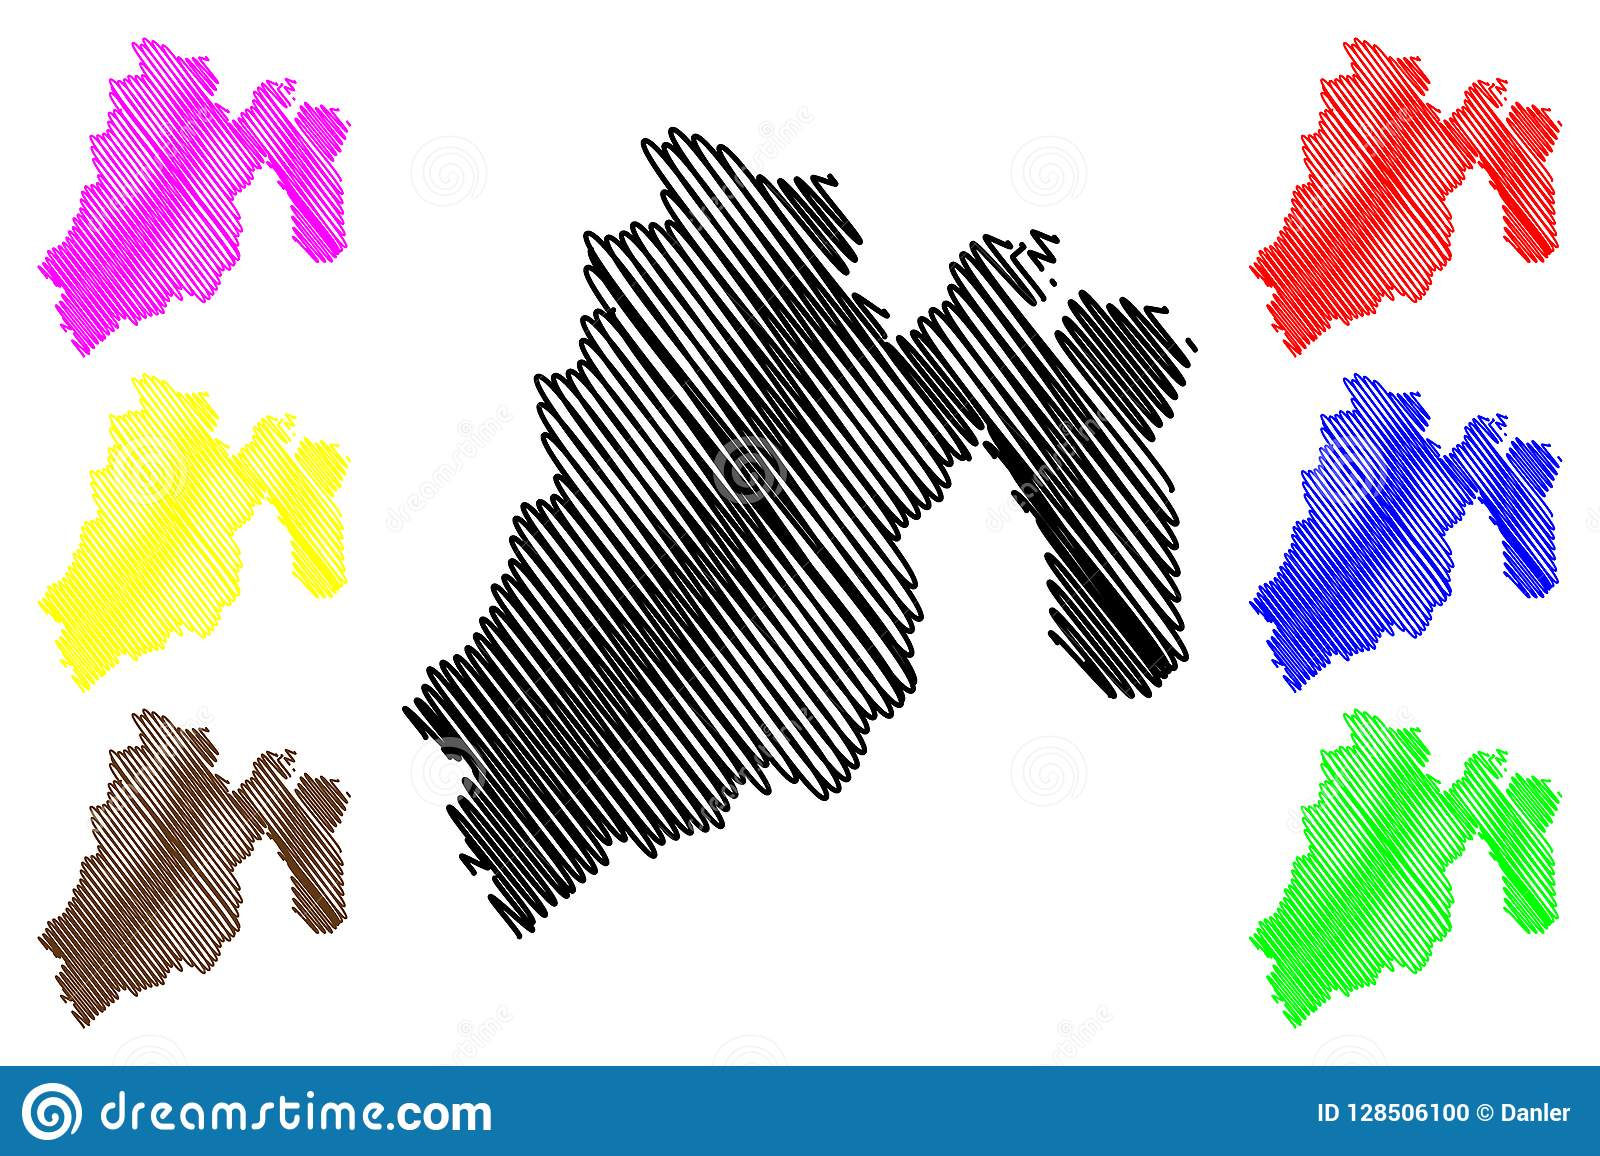 State of Mexico map vector stock vector. Illustration of ...